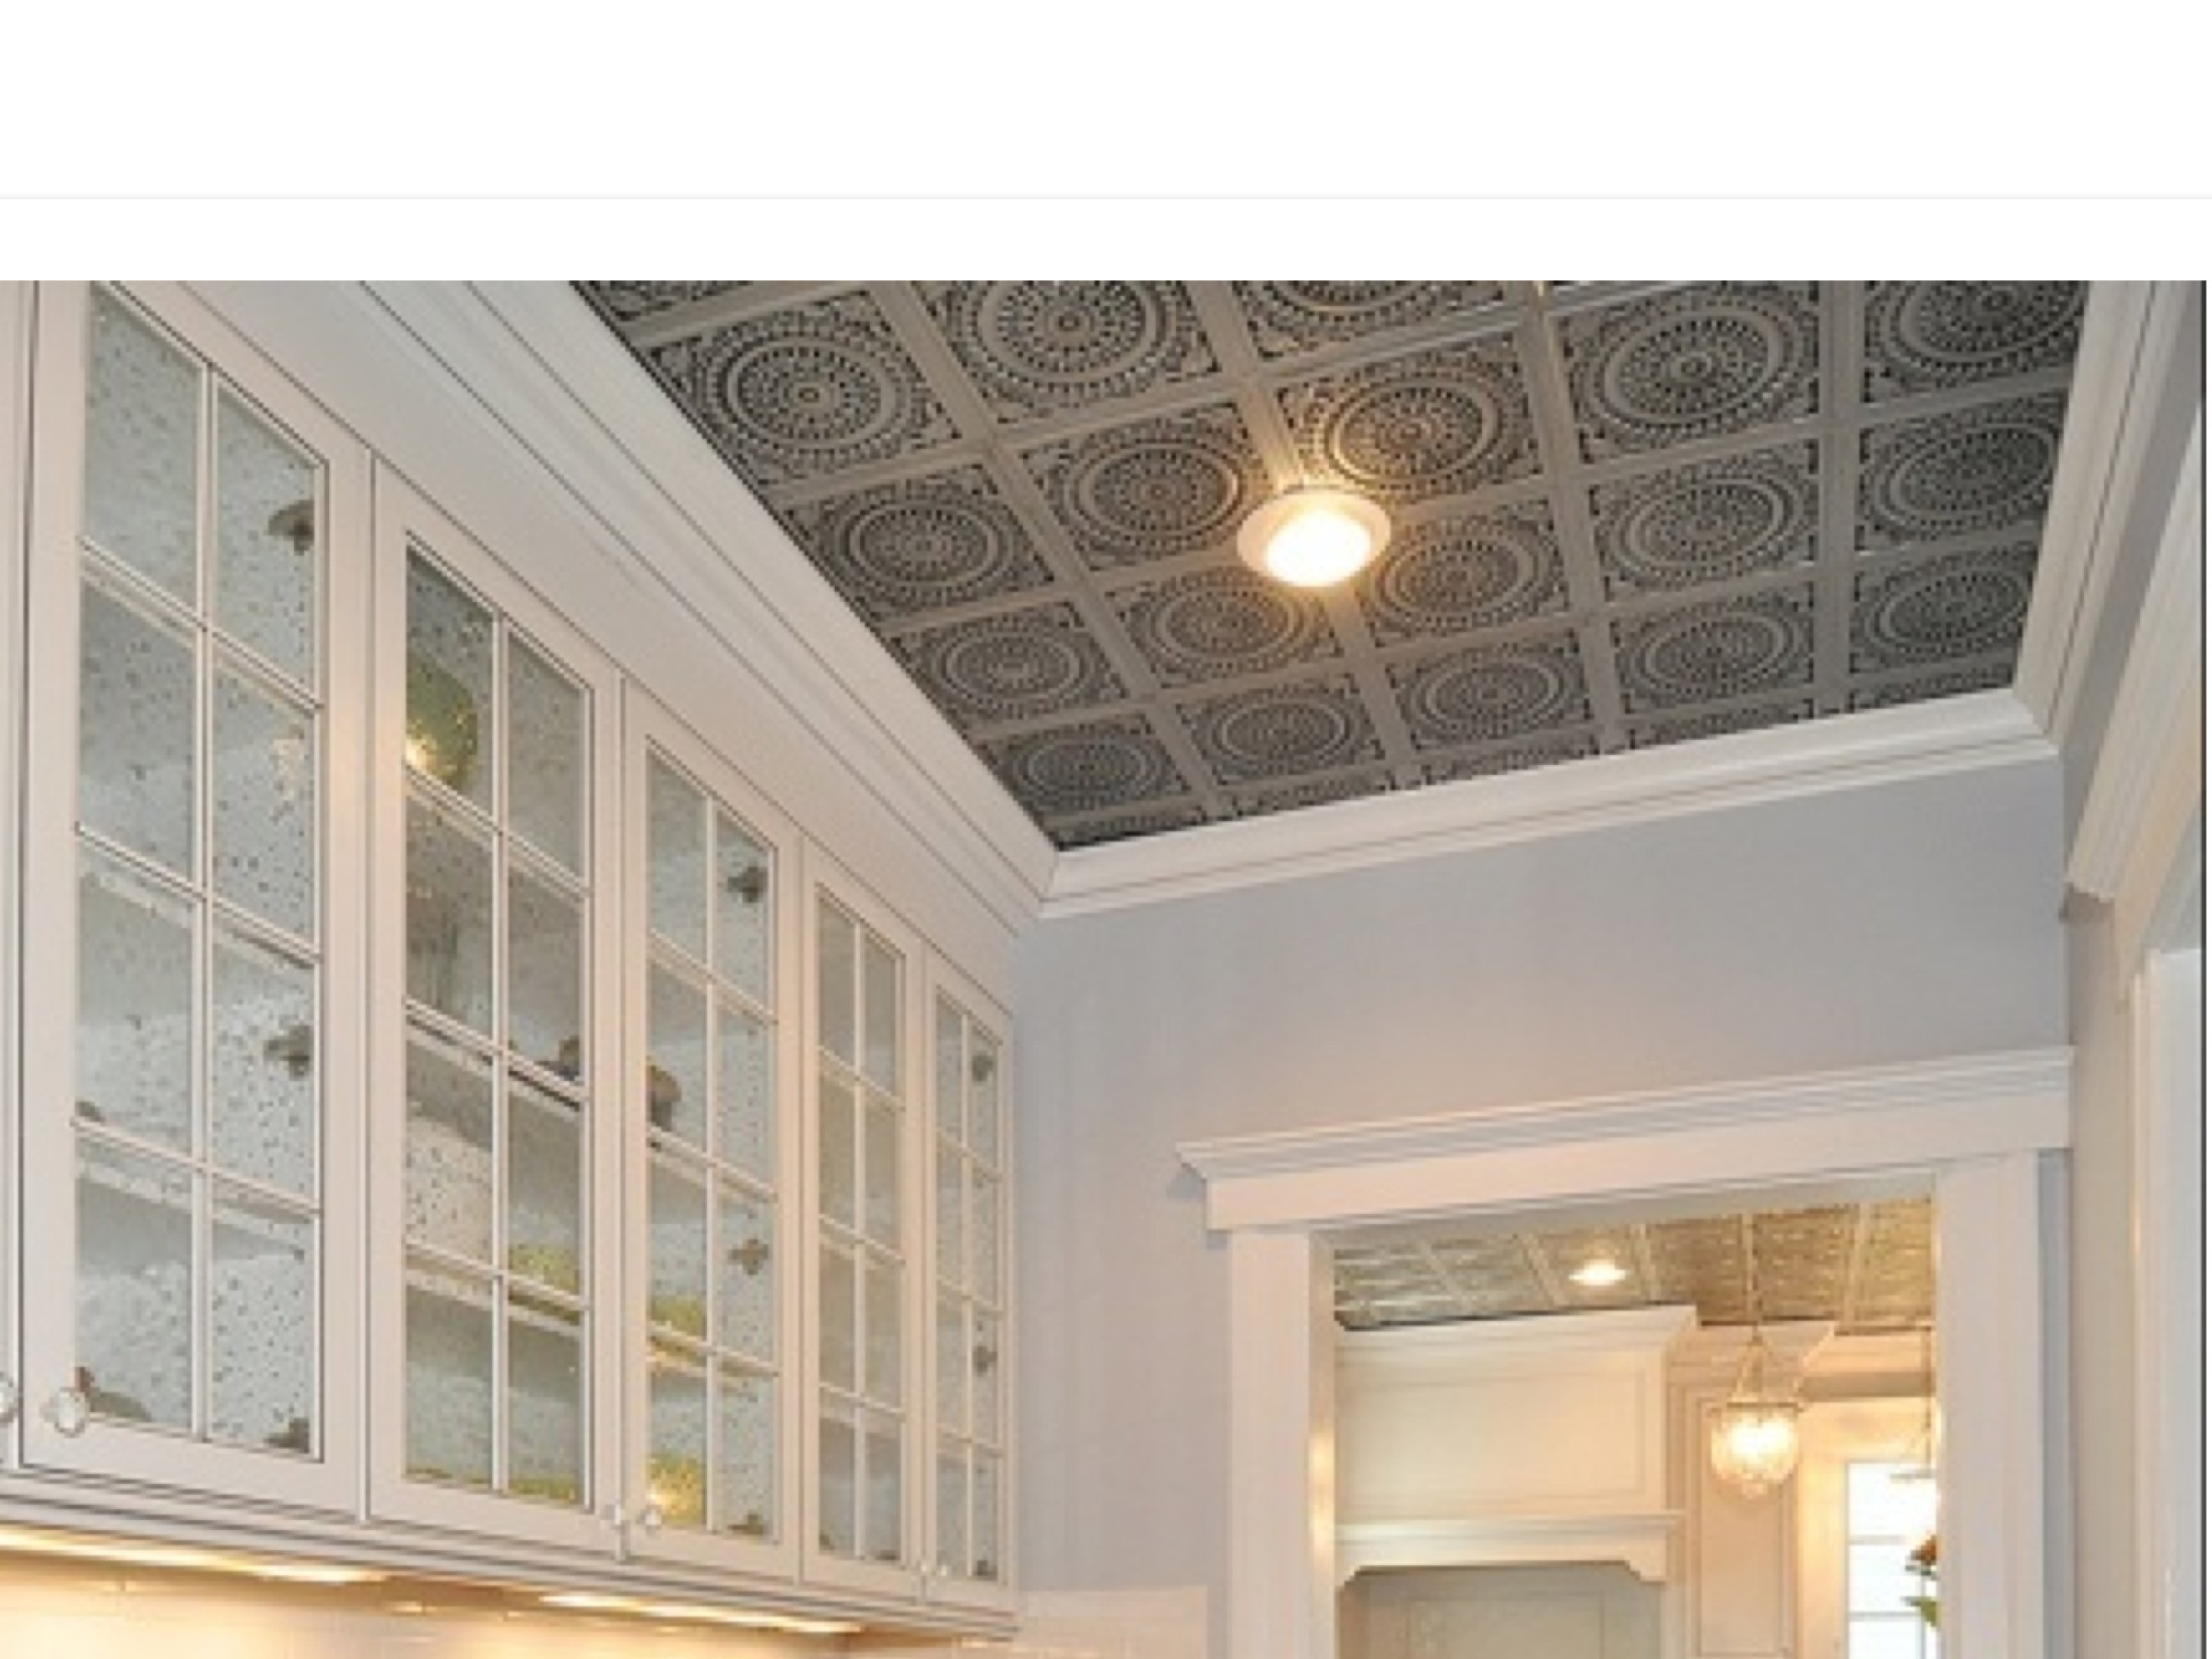 Faux Tin Decorative Ceiling Tiles in Butlers Pantry